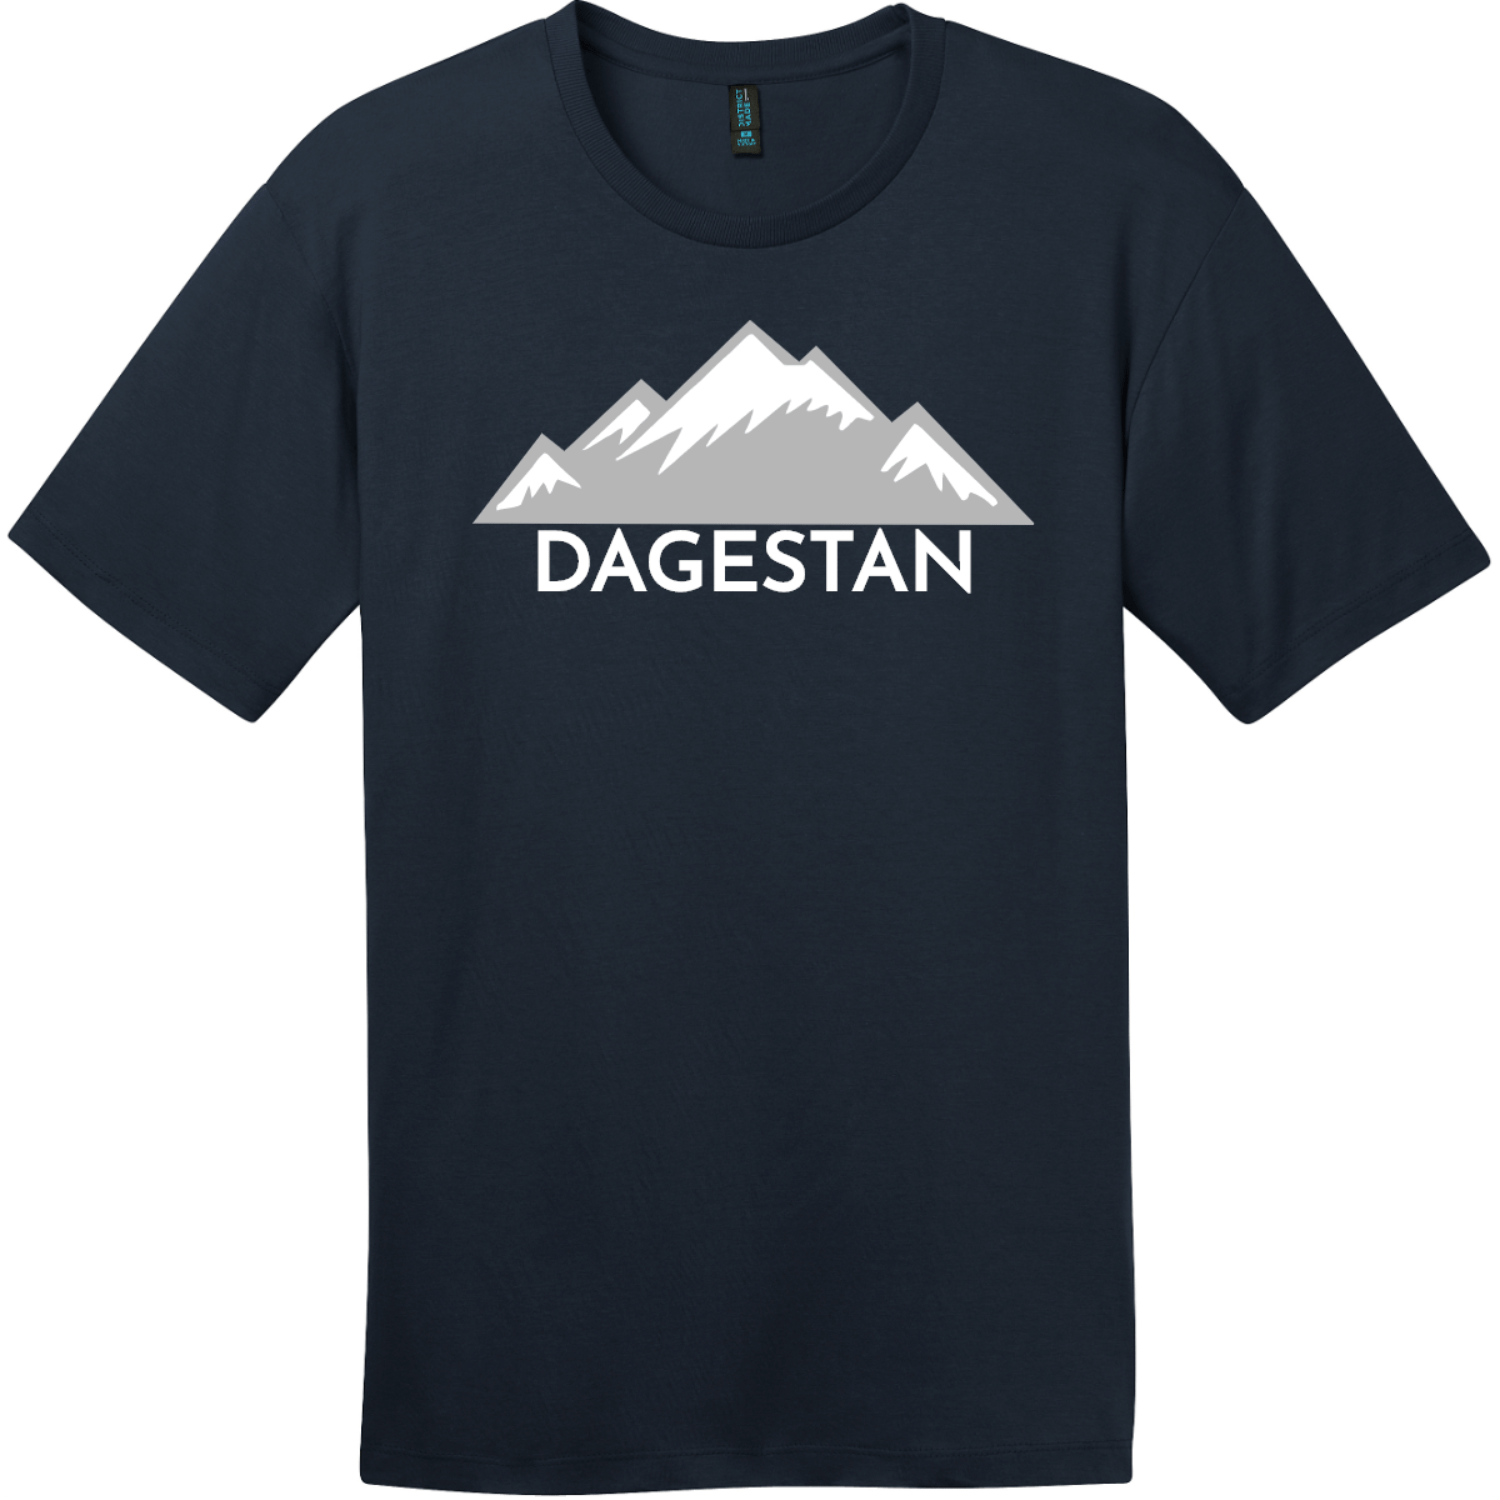 Dagestan Mountain T-Shirt New Navy District Perfect Weight Tee DT104